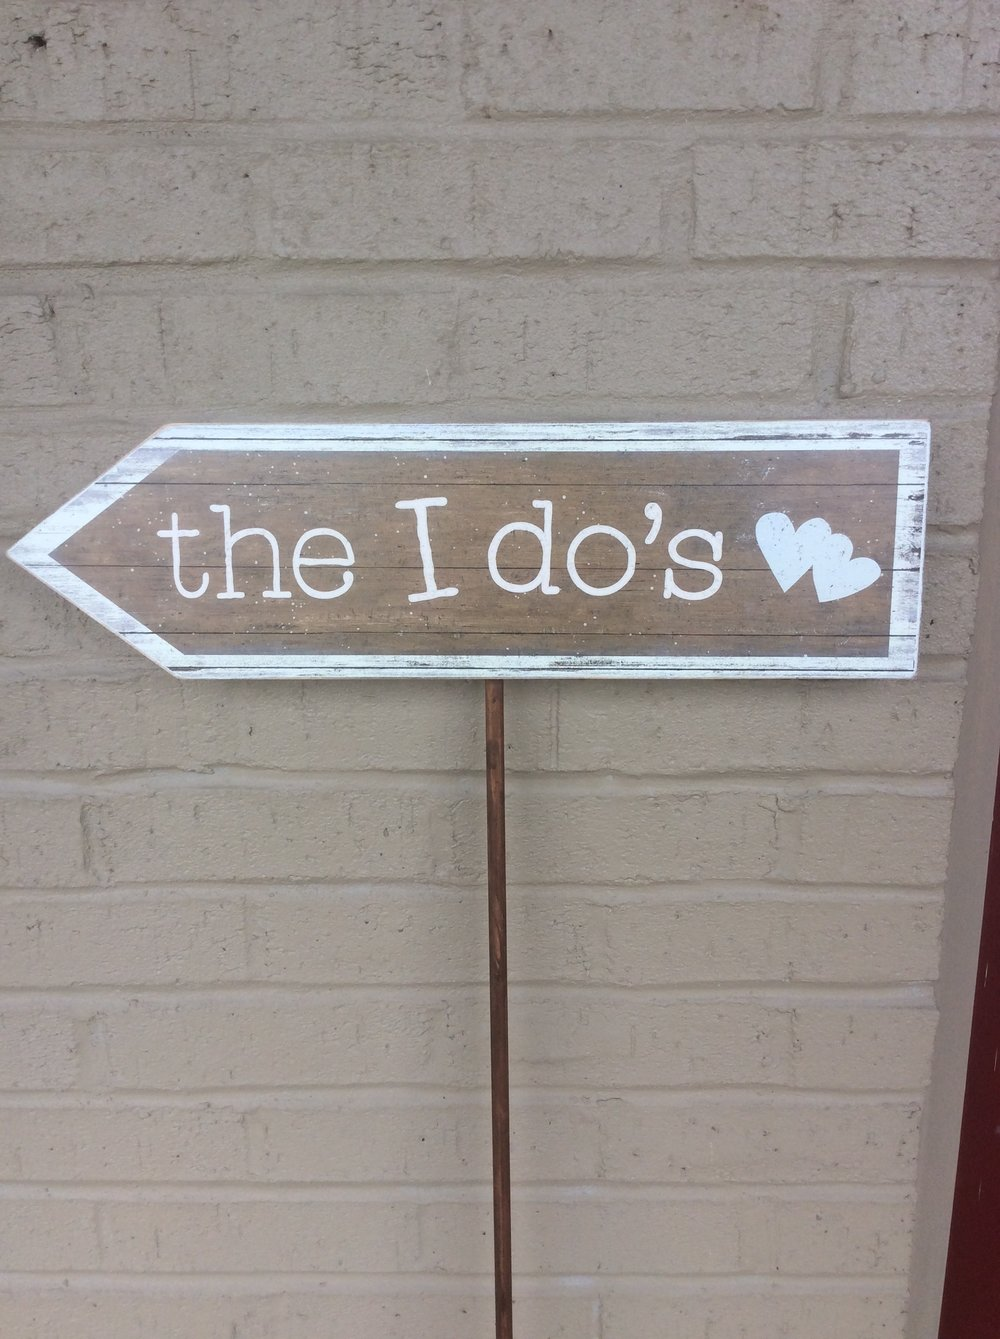 I do's Yard Sign - Rental $10.00 -2 available